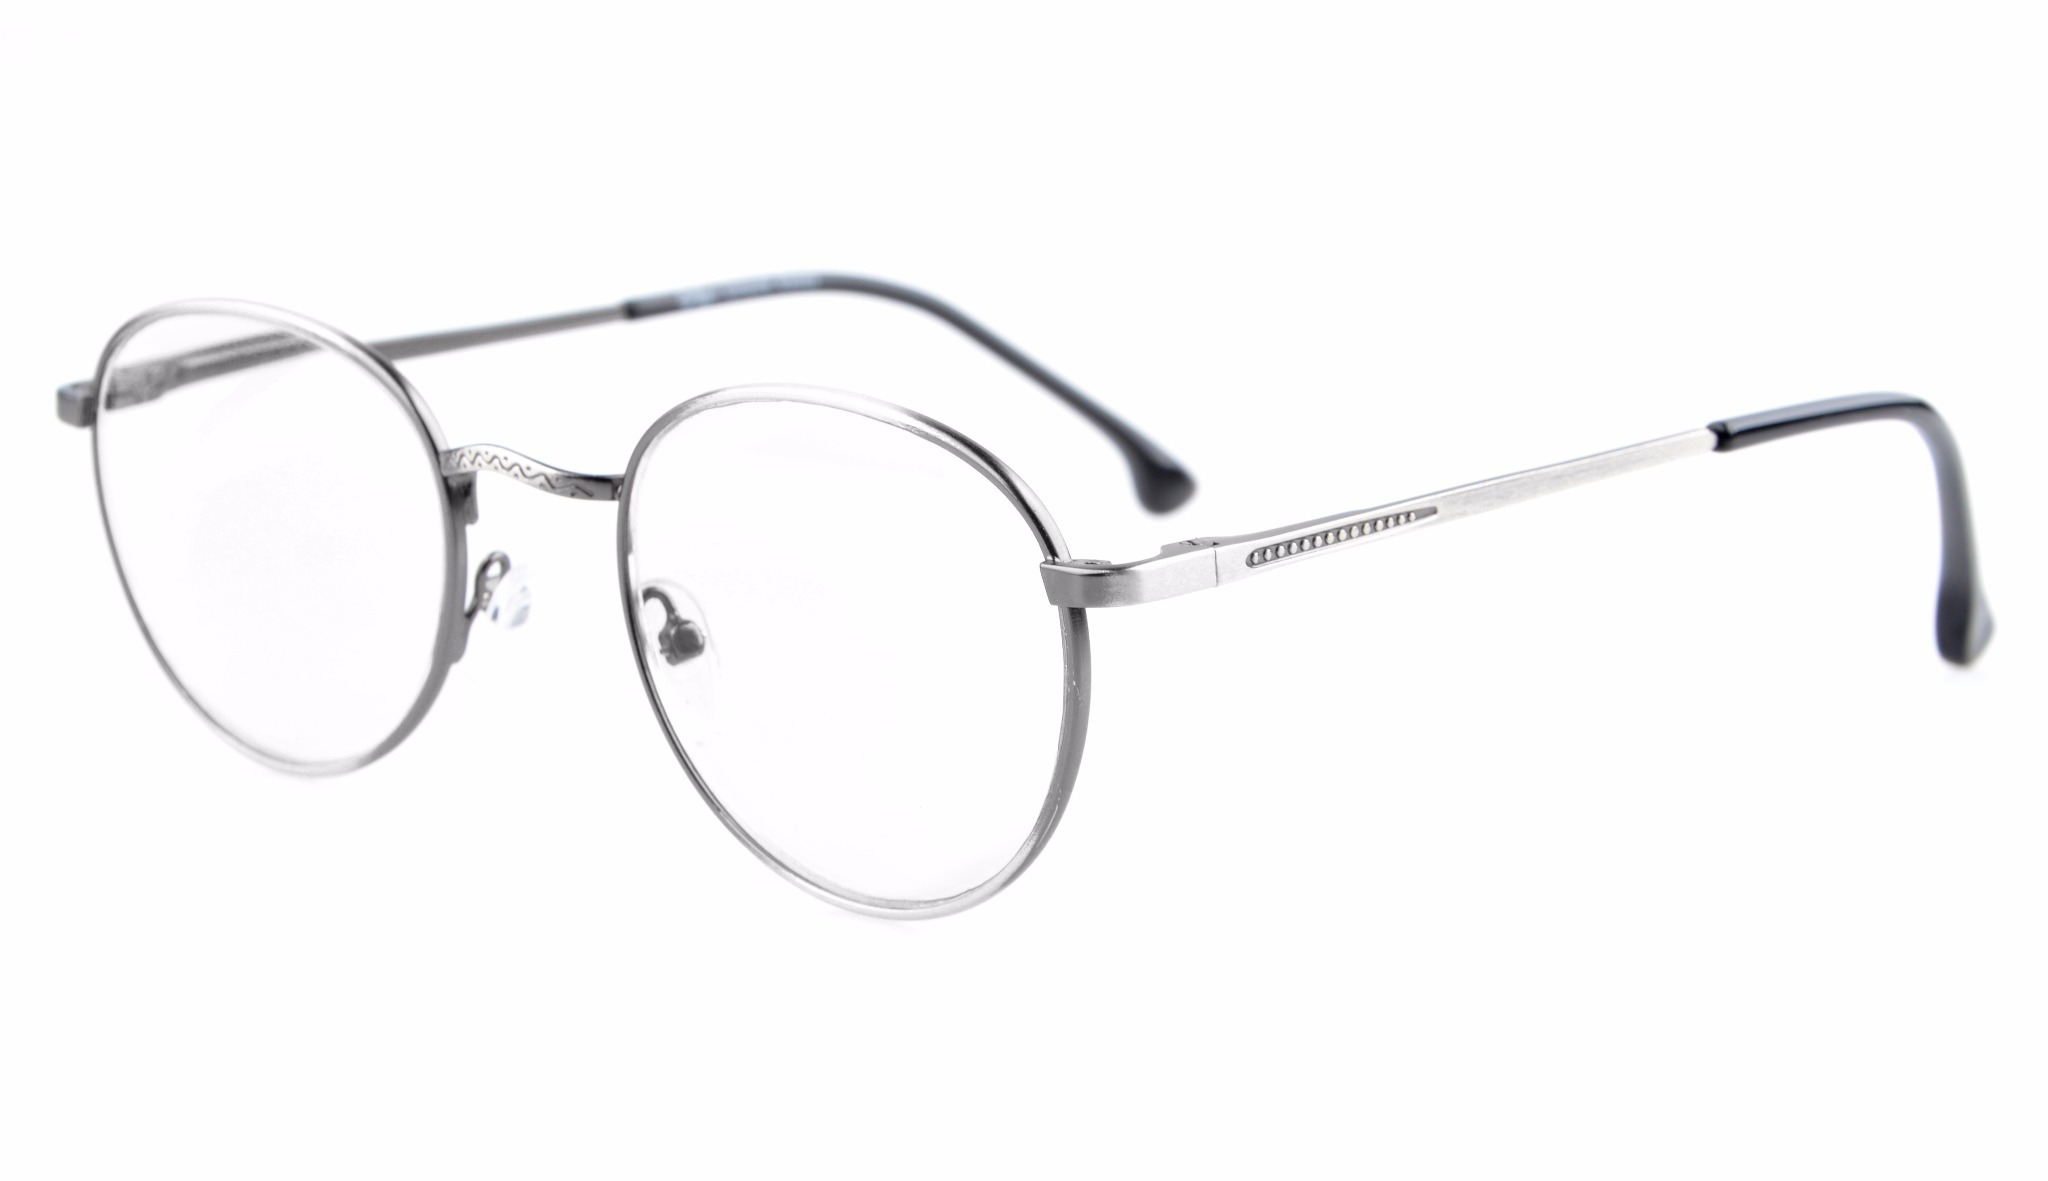 Eyekepper Oval Round Quality Spring Hinges Glasses Eyeglasses Frame R1620-Anti Silver-0.0